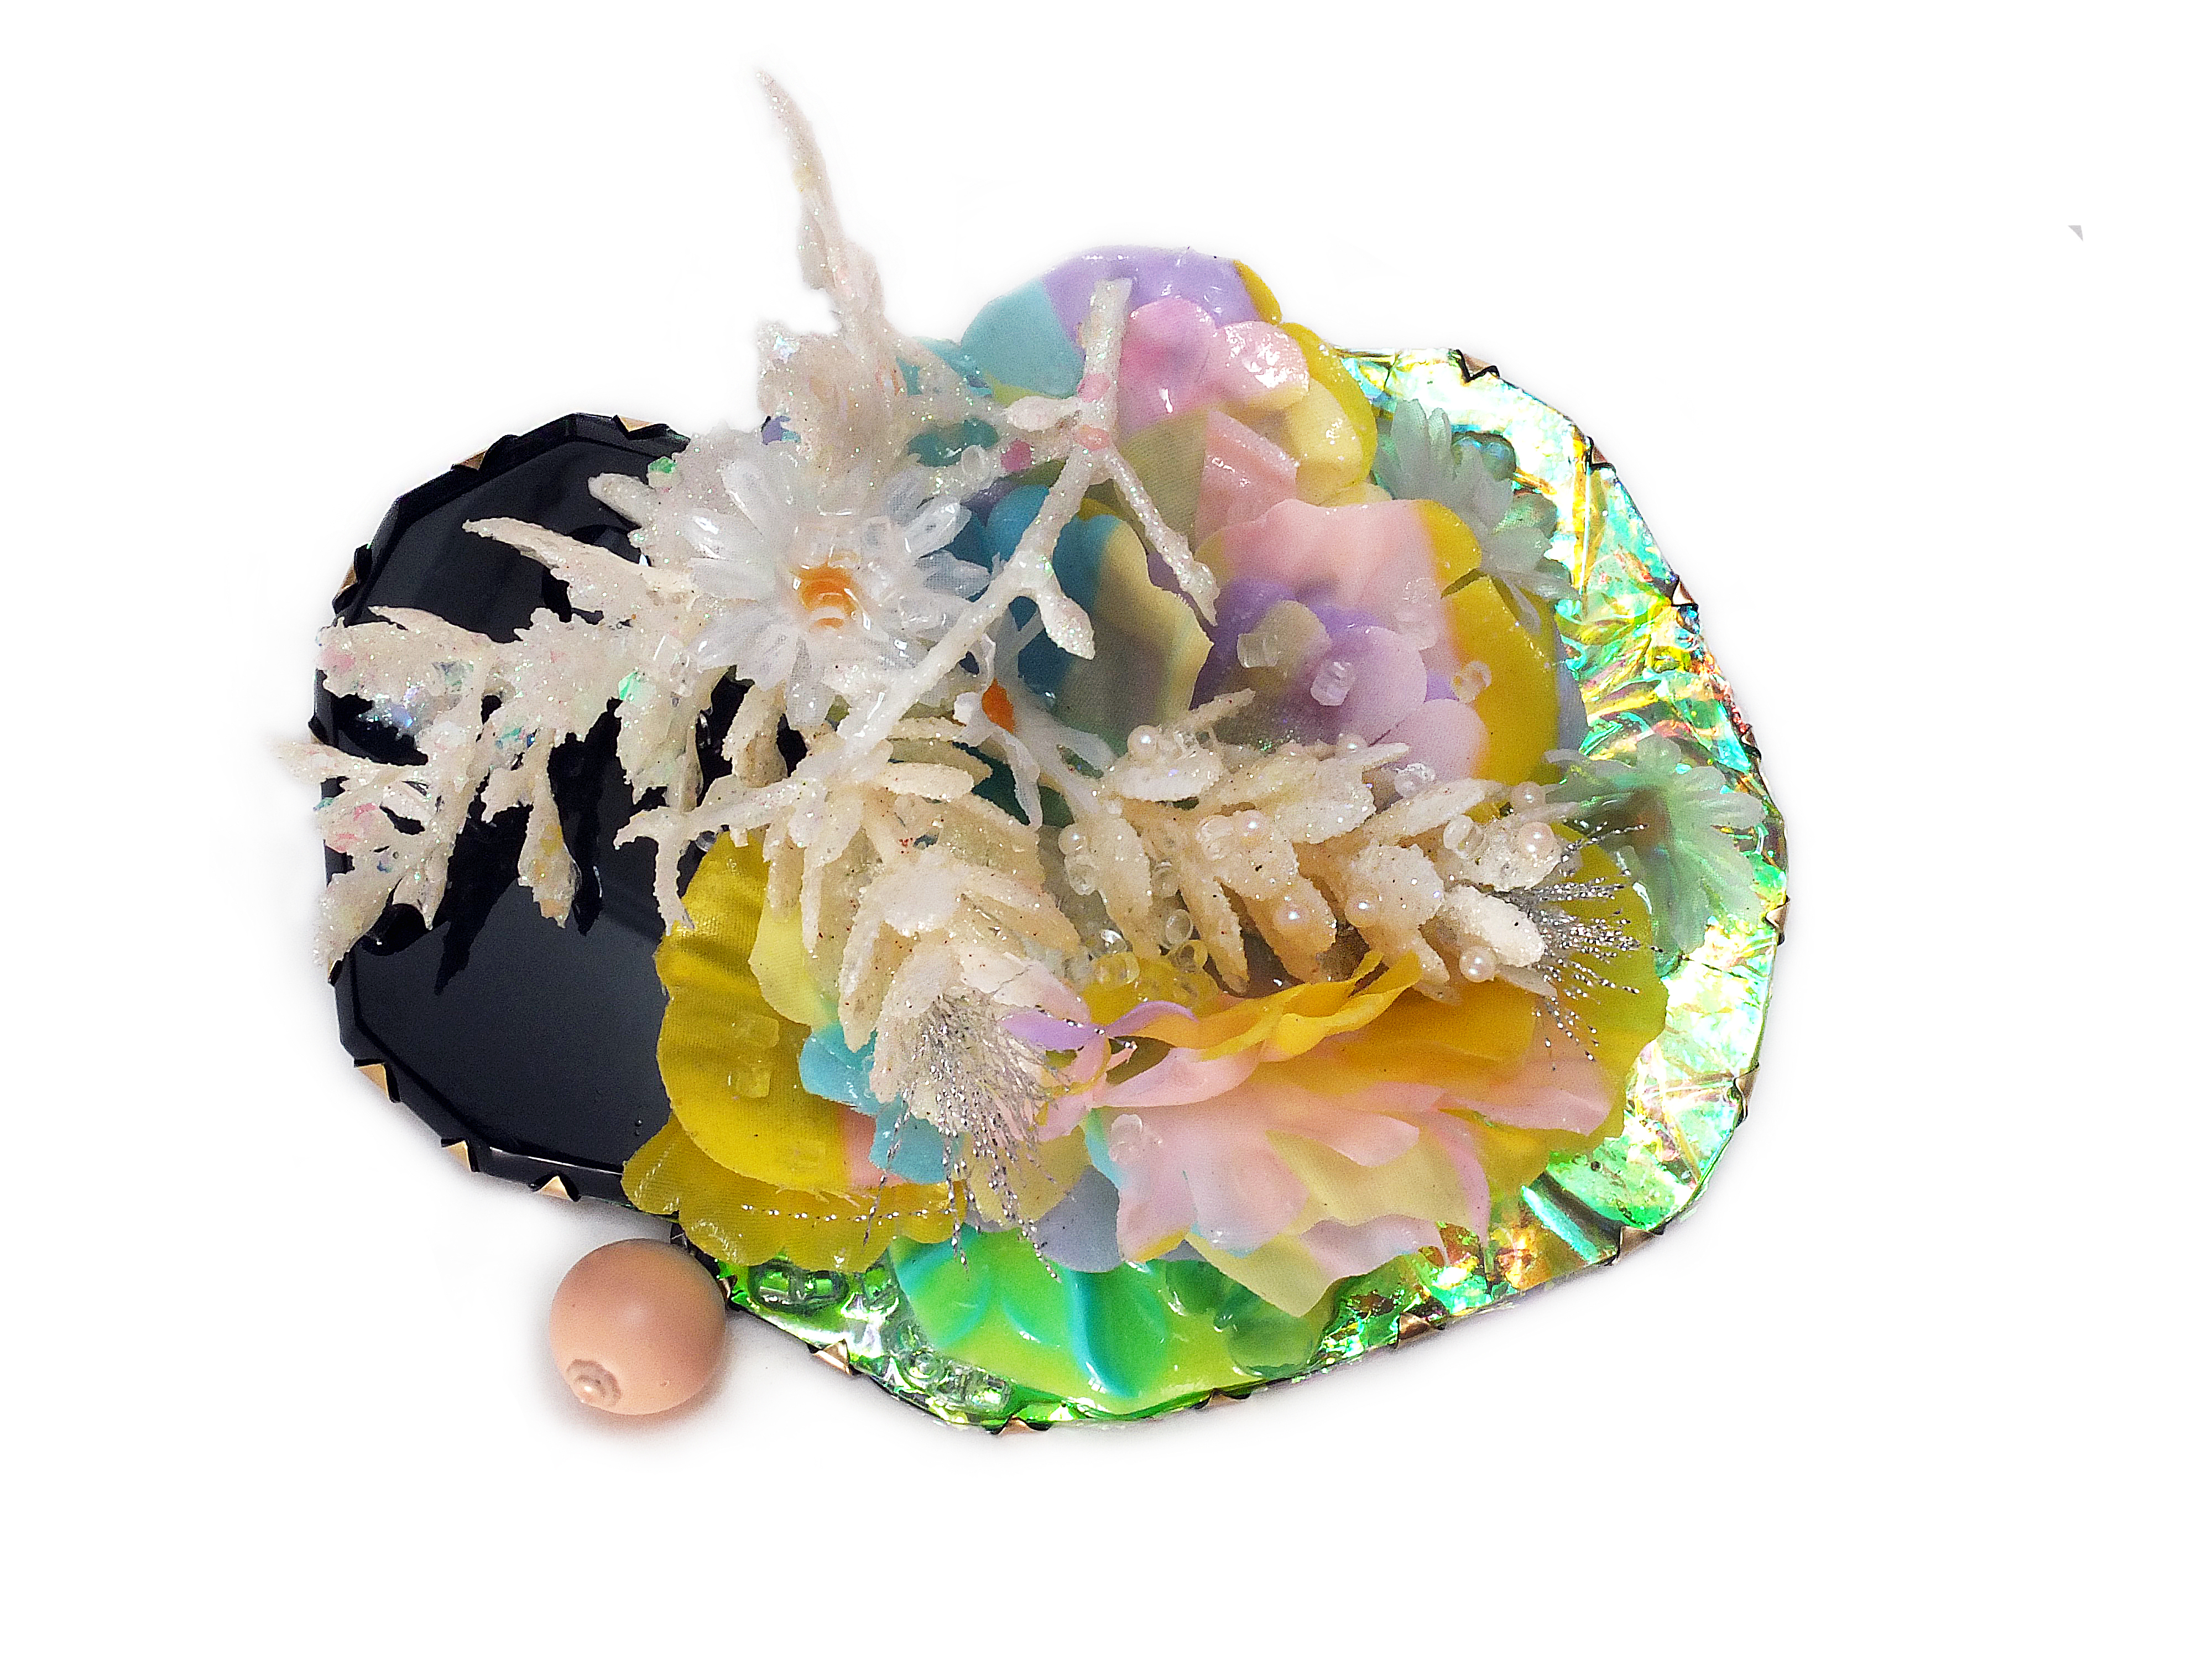 Nikki Couppee, Large Corsage Brooch, Plexiglass, brass, found object, steel, (glow in the dark)